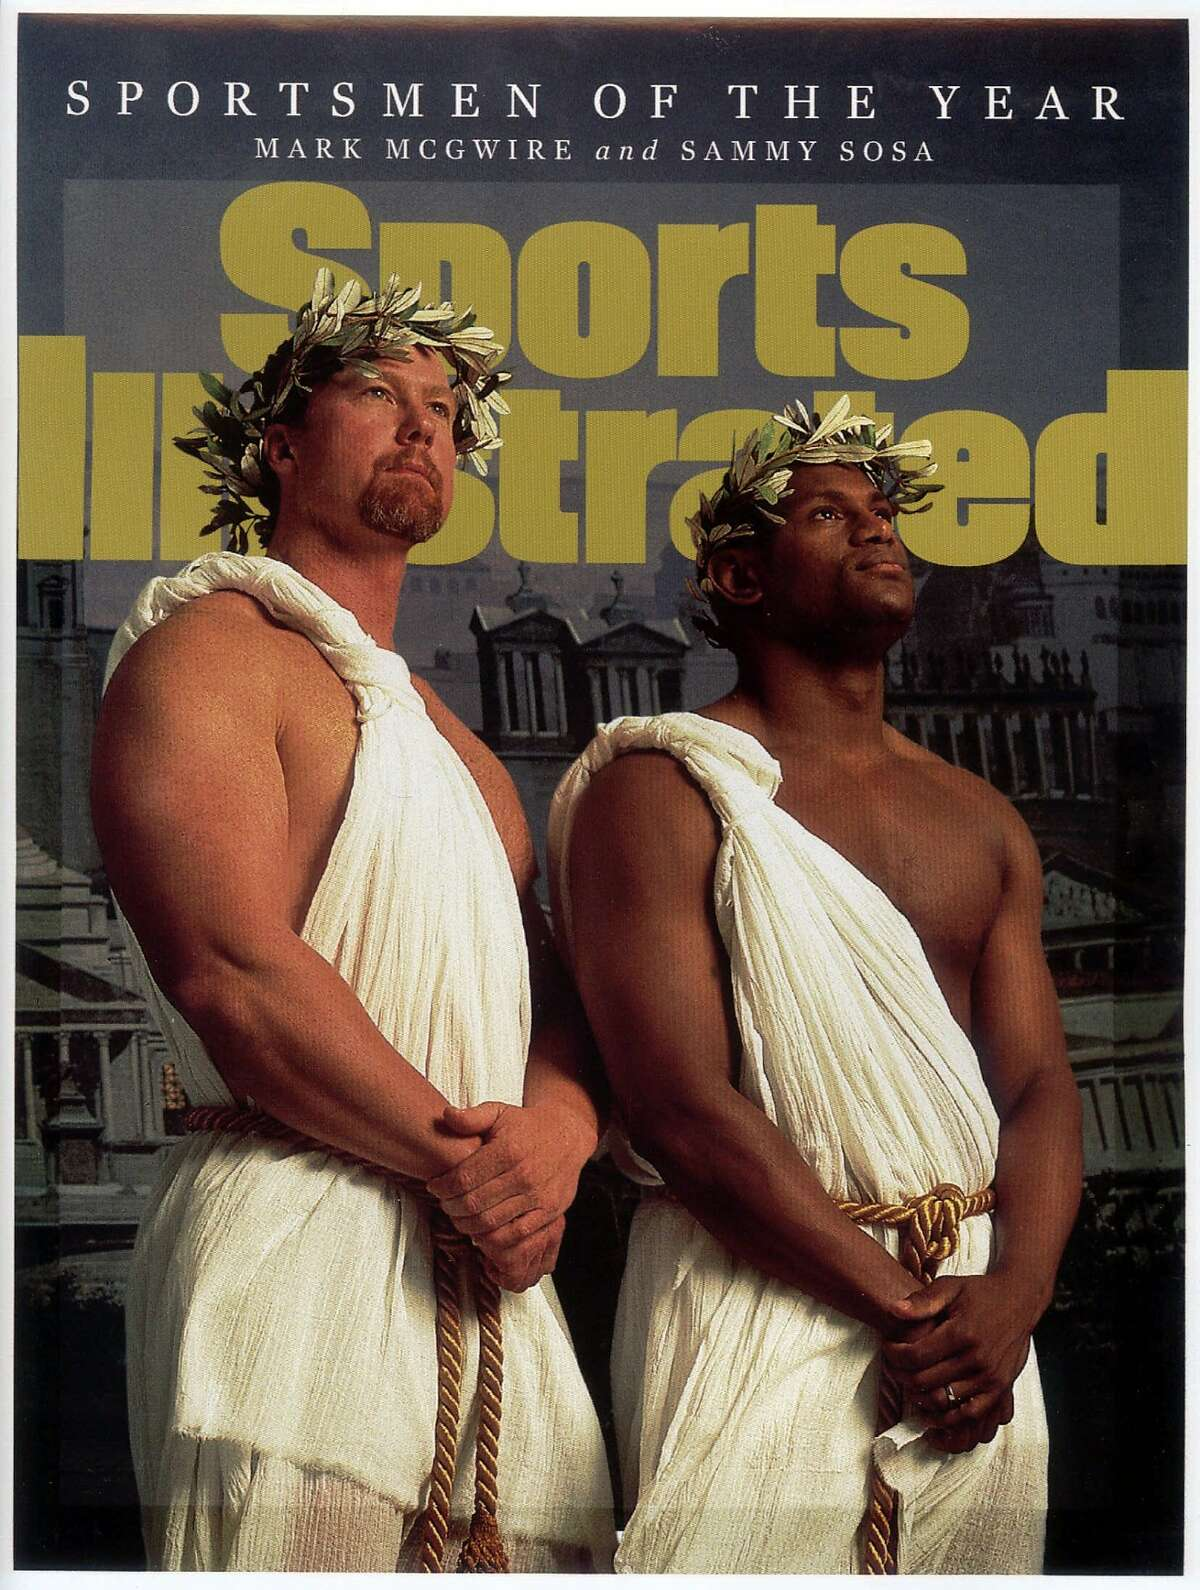 This is the cover of the upcoming Dec. 21, 1998 issue of Sports Illustrated featuring the 1998 Sports Illustrated Sportsmen of the Year Mark McGwire and Sammy Sosa. (AP Photo/Sports Illustrated)